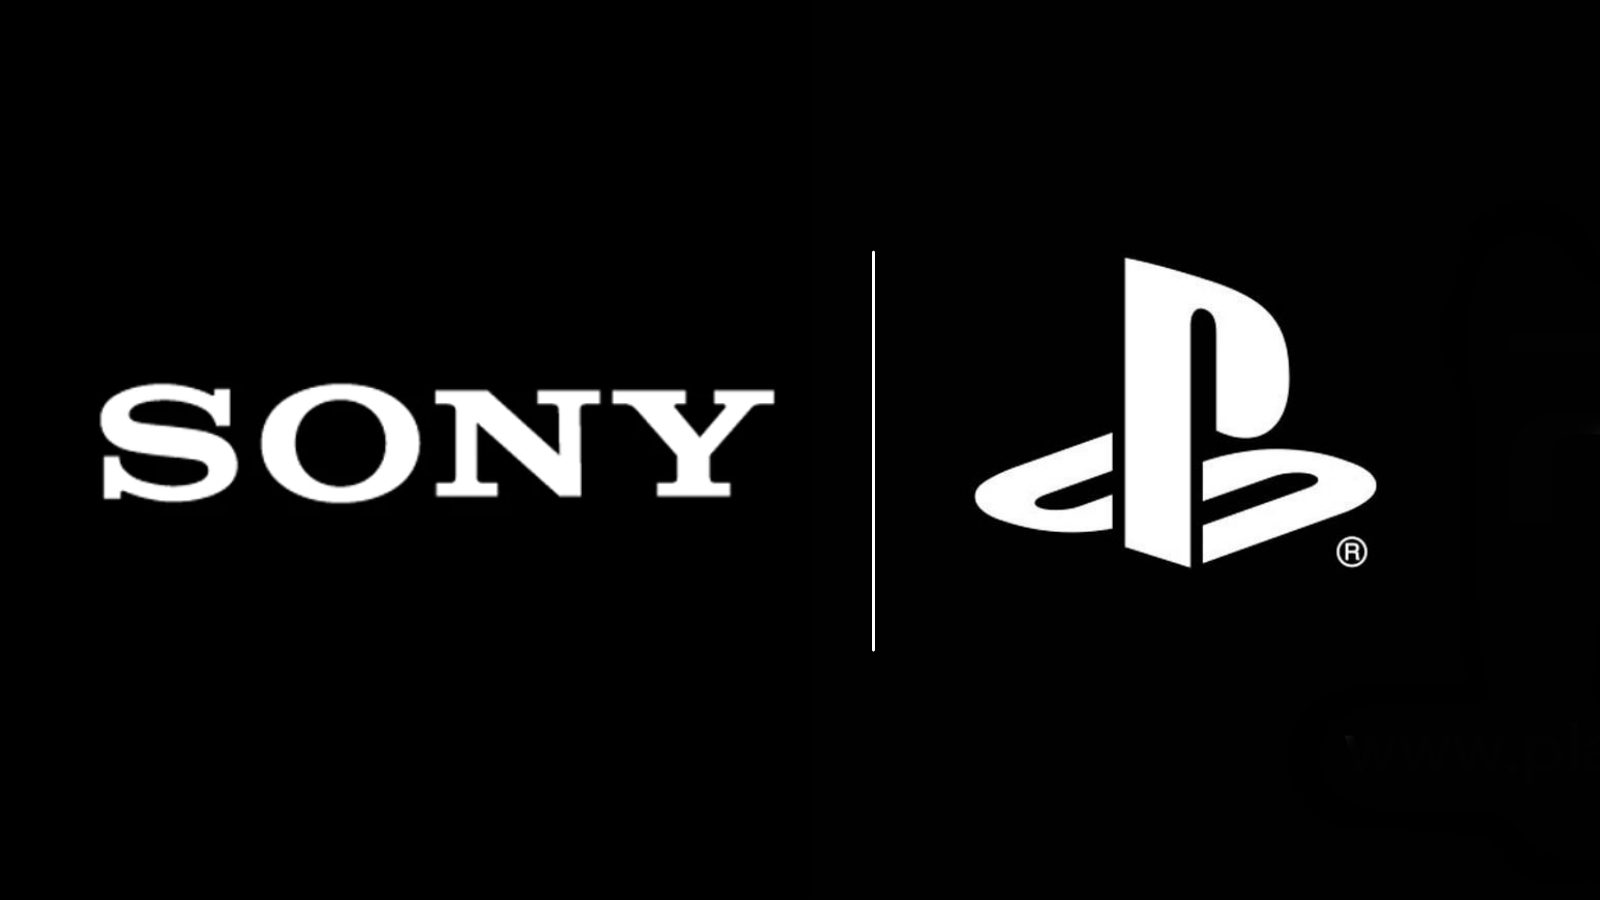 Sony 2018 19 FY Results 01 Header